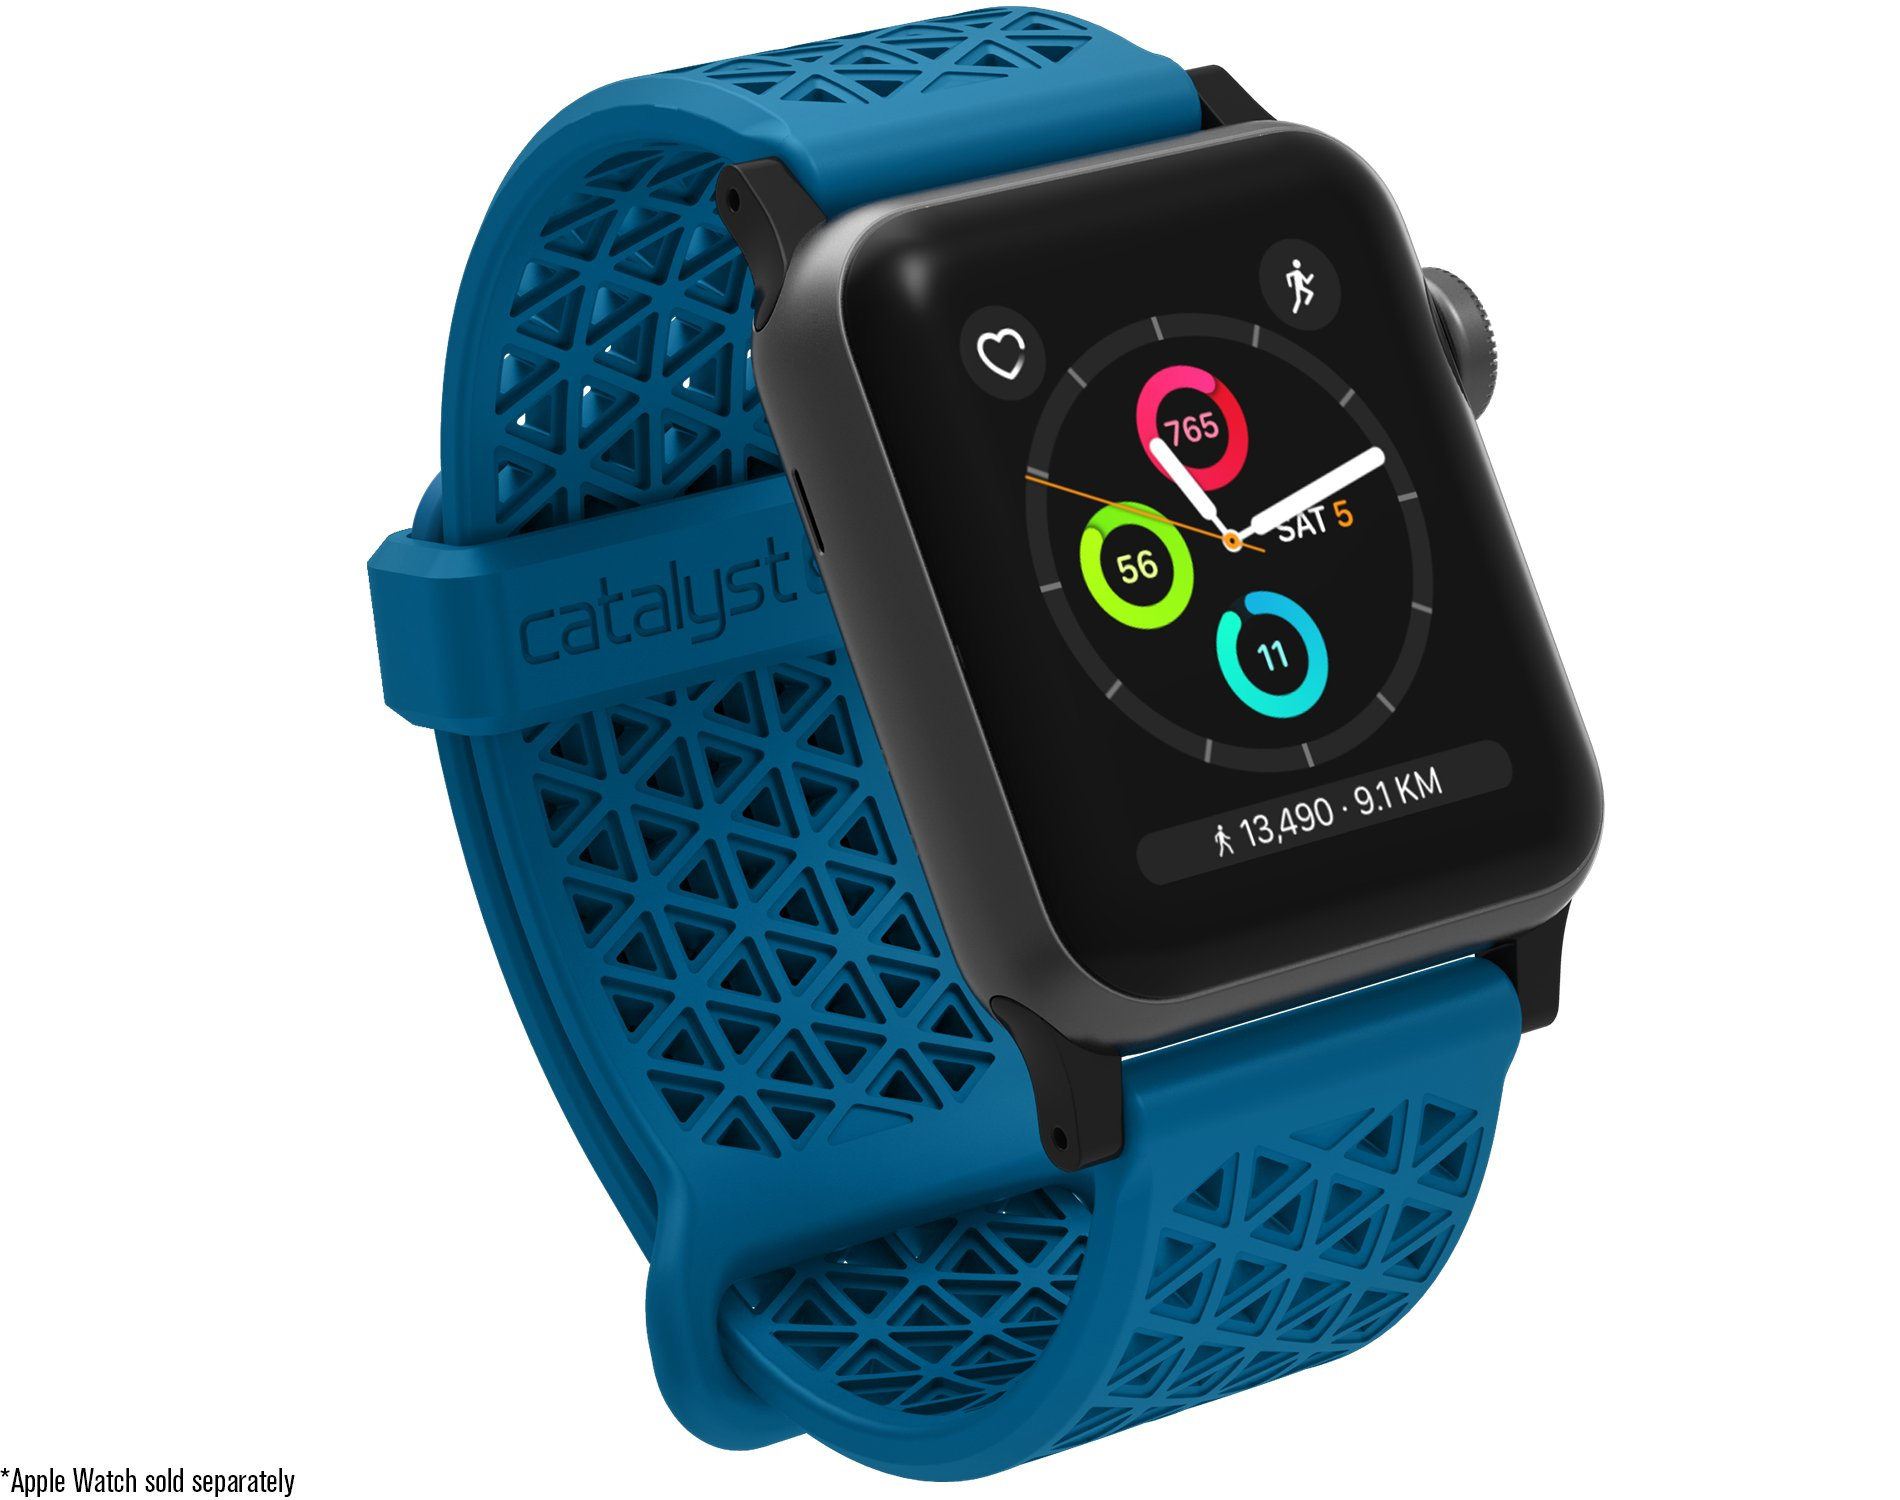 Catalyst Compatible with Apple Watch Band 40mm 38mm, Quick Release Silicone Hypoallergenic Sport Band 22mm for Apple Watch Series 4, Series 3, Series 2, Series 1 - Blueridge/Sunset